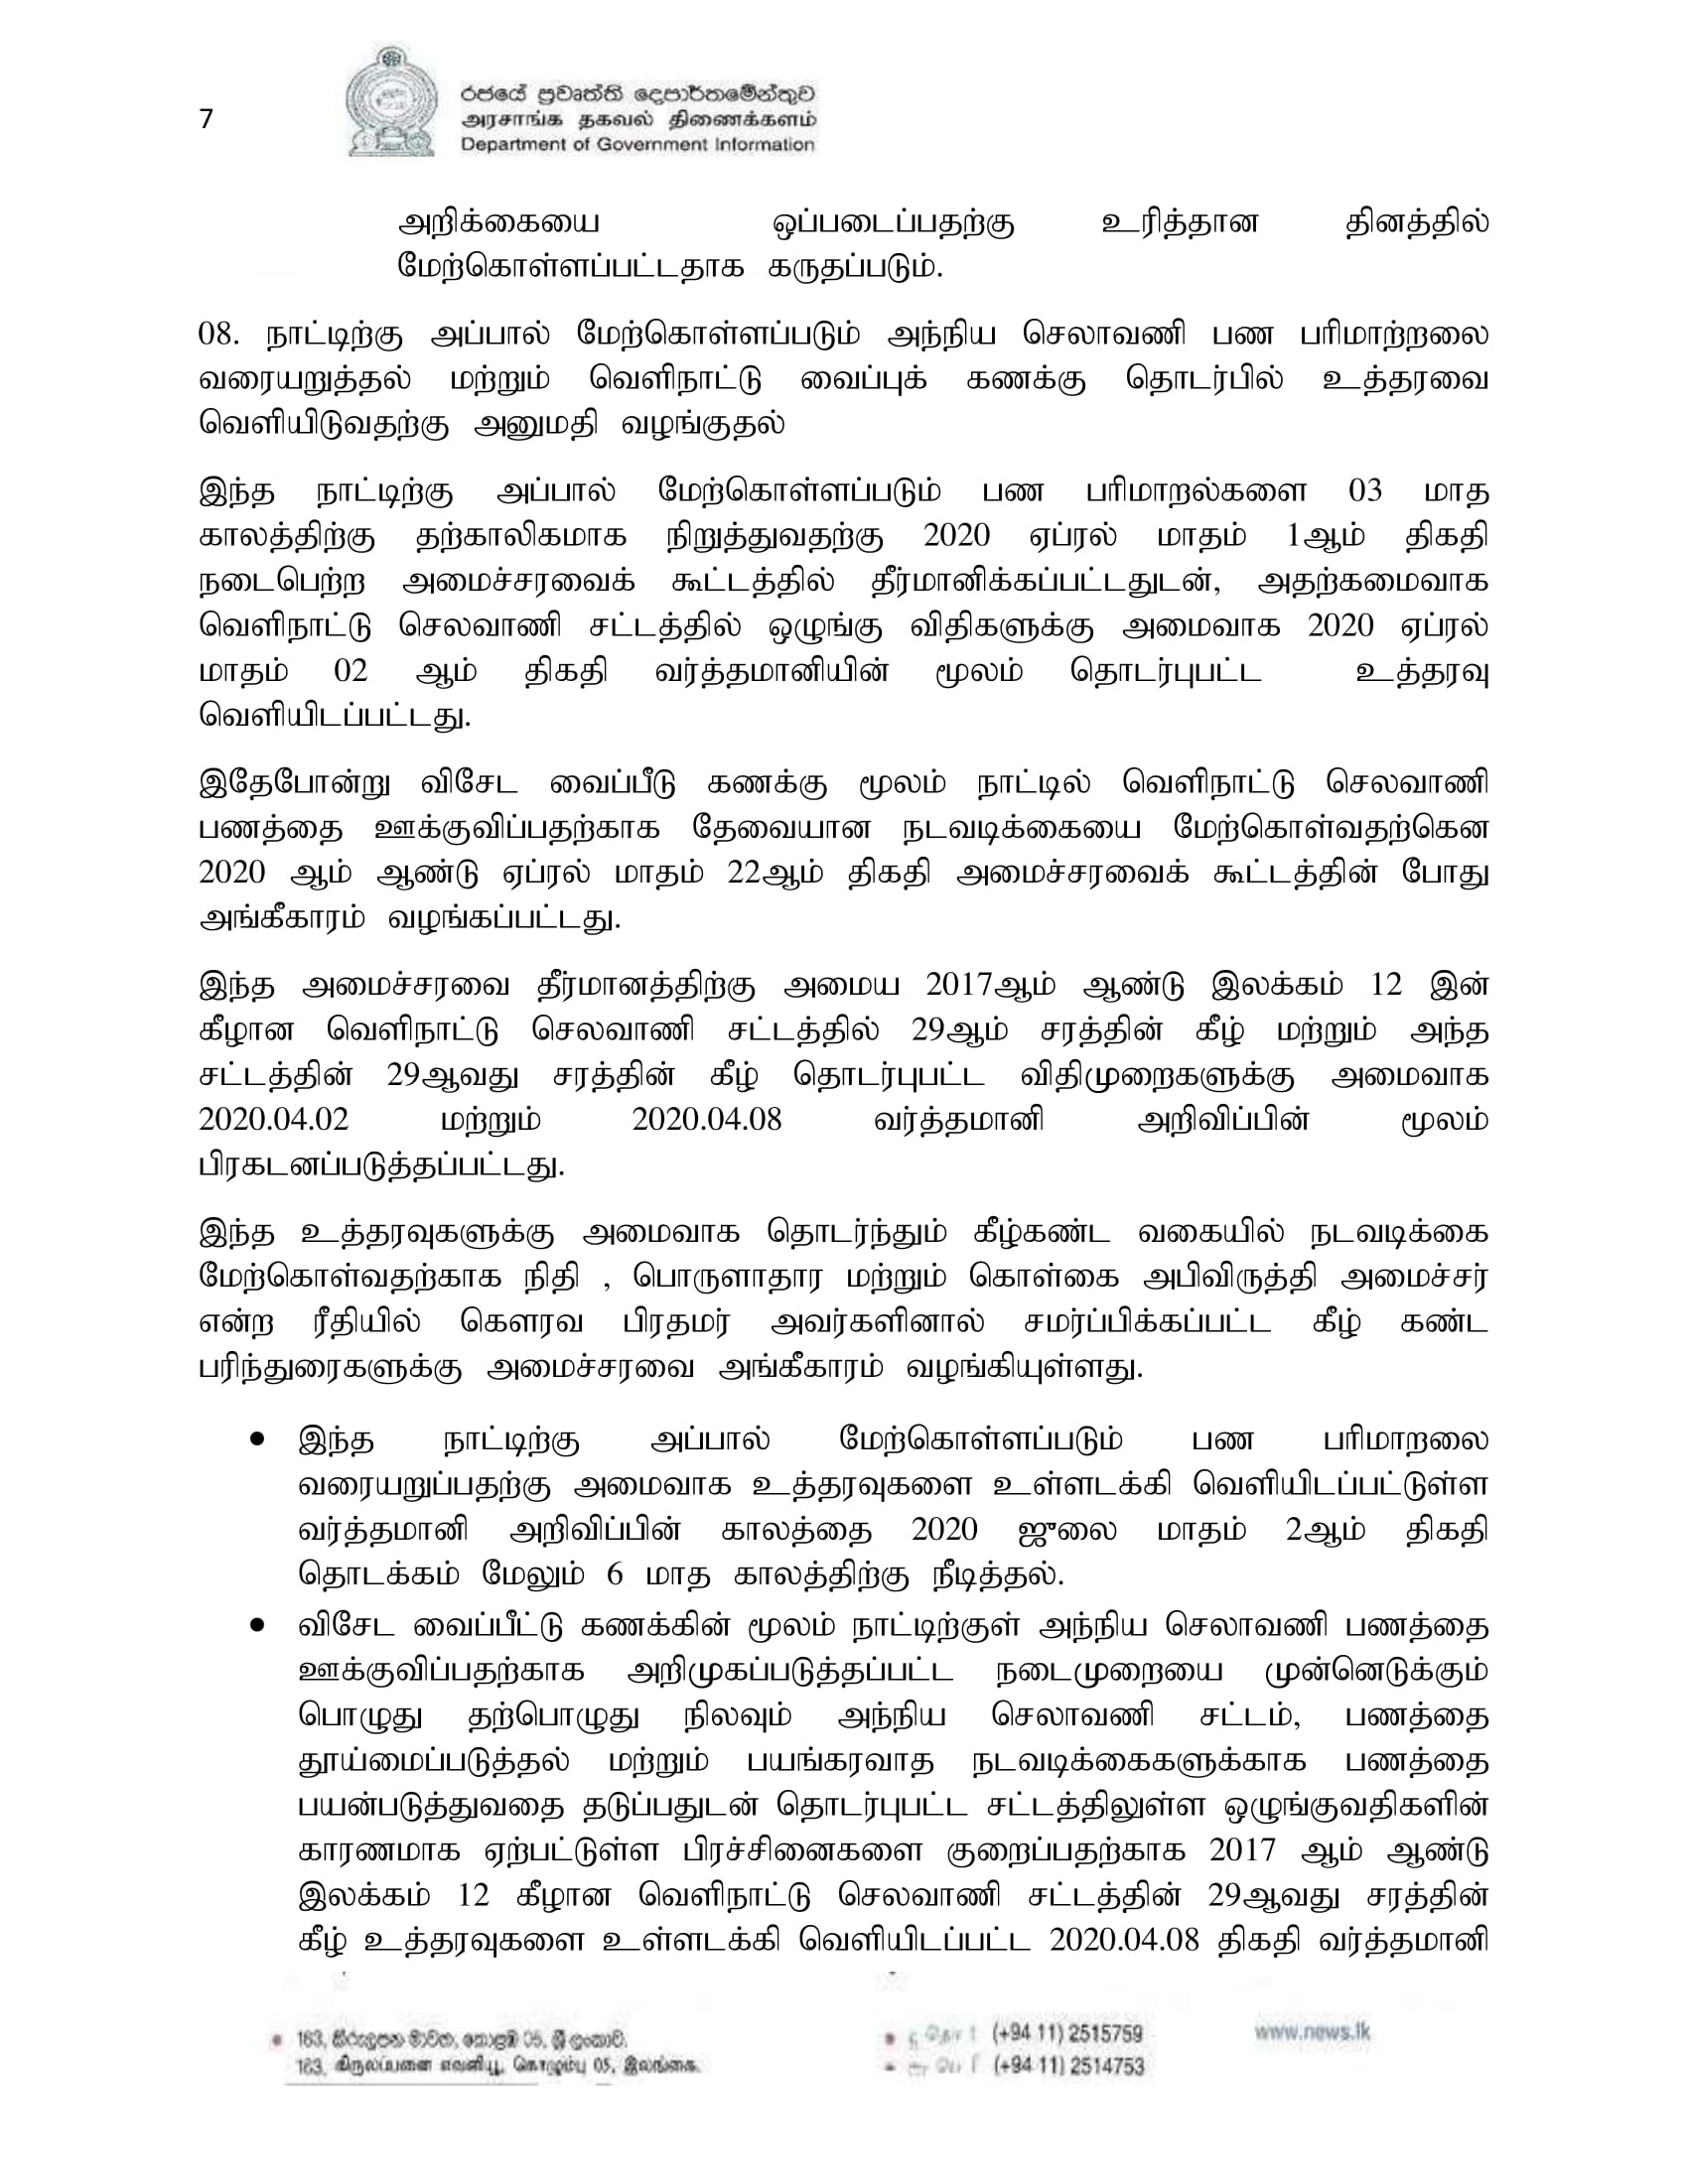 2020.06.24 Cabinet Tamil 1 1 7